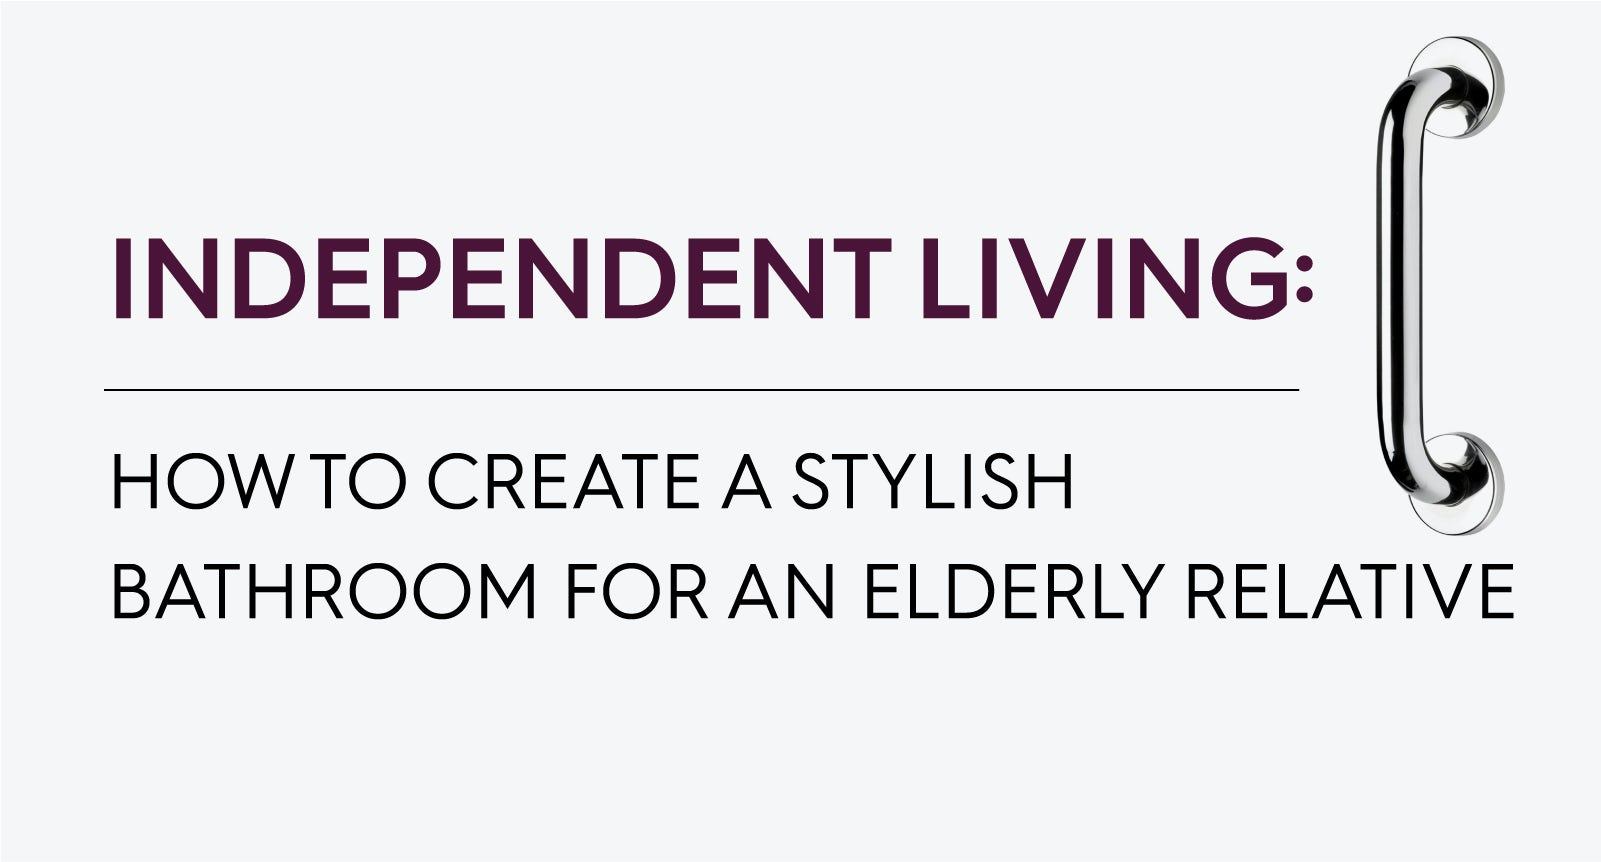 Independent Living: How to create a stylish bathroom for an elderly relative